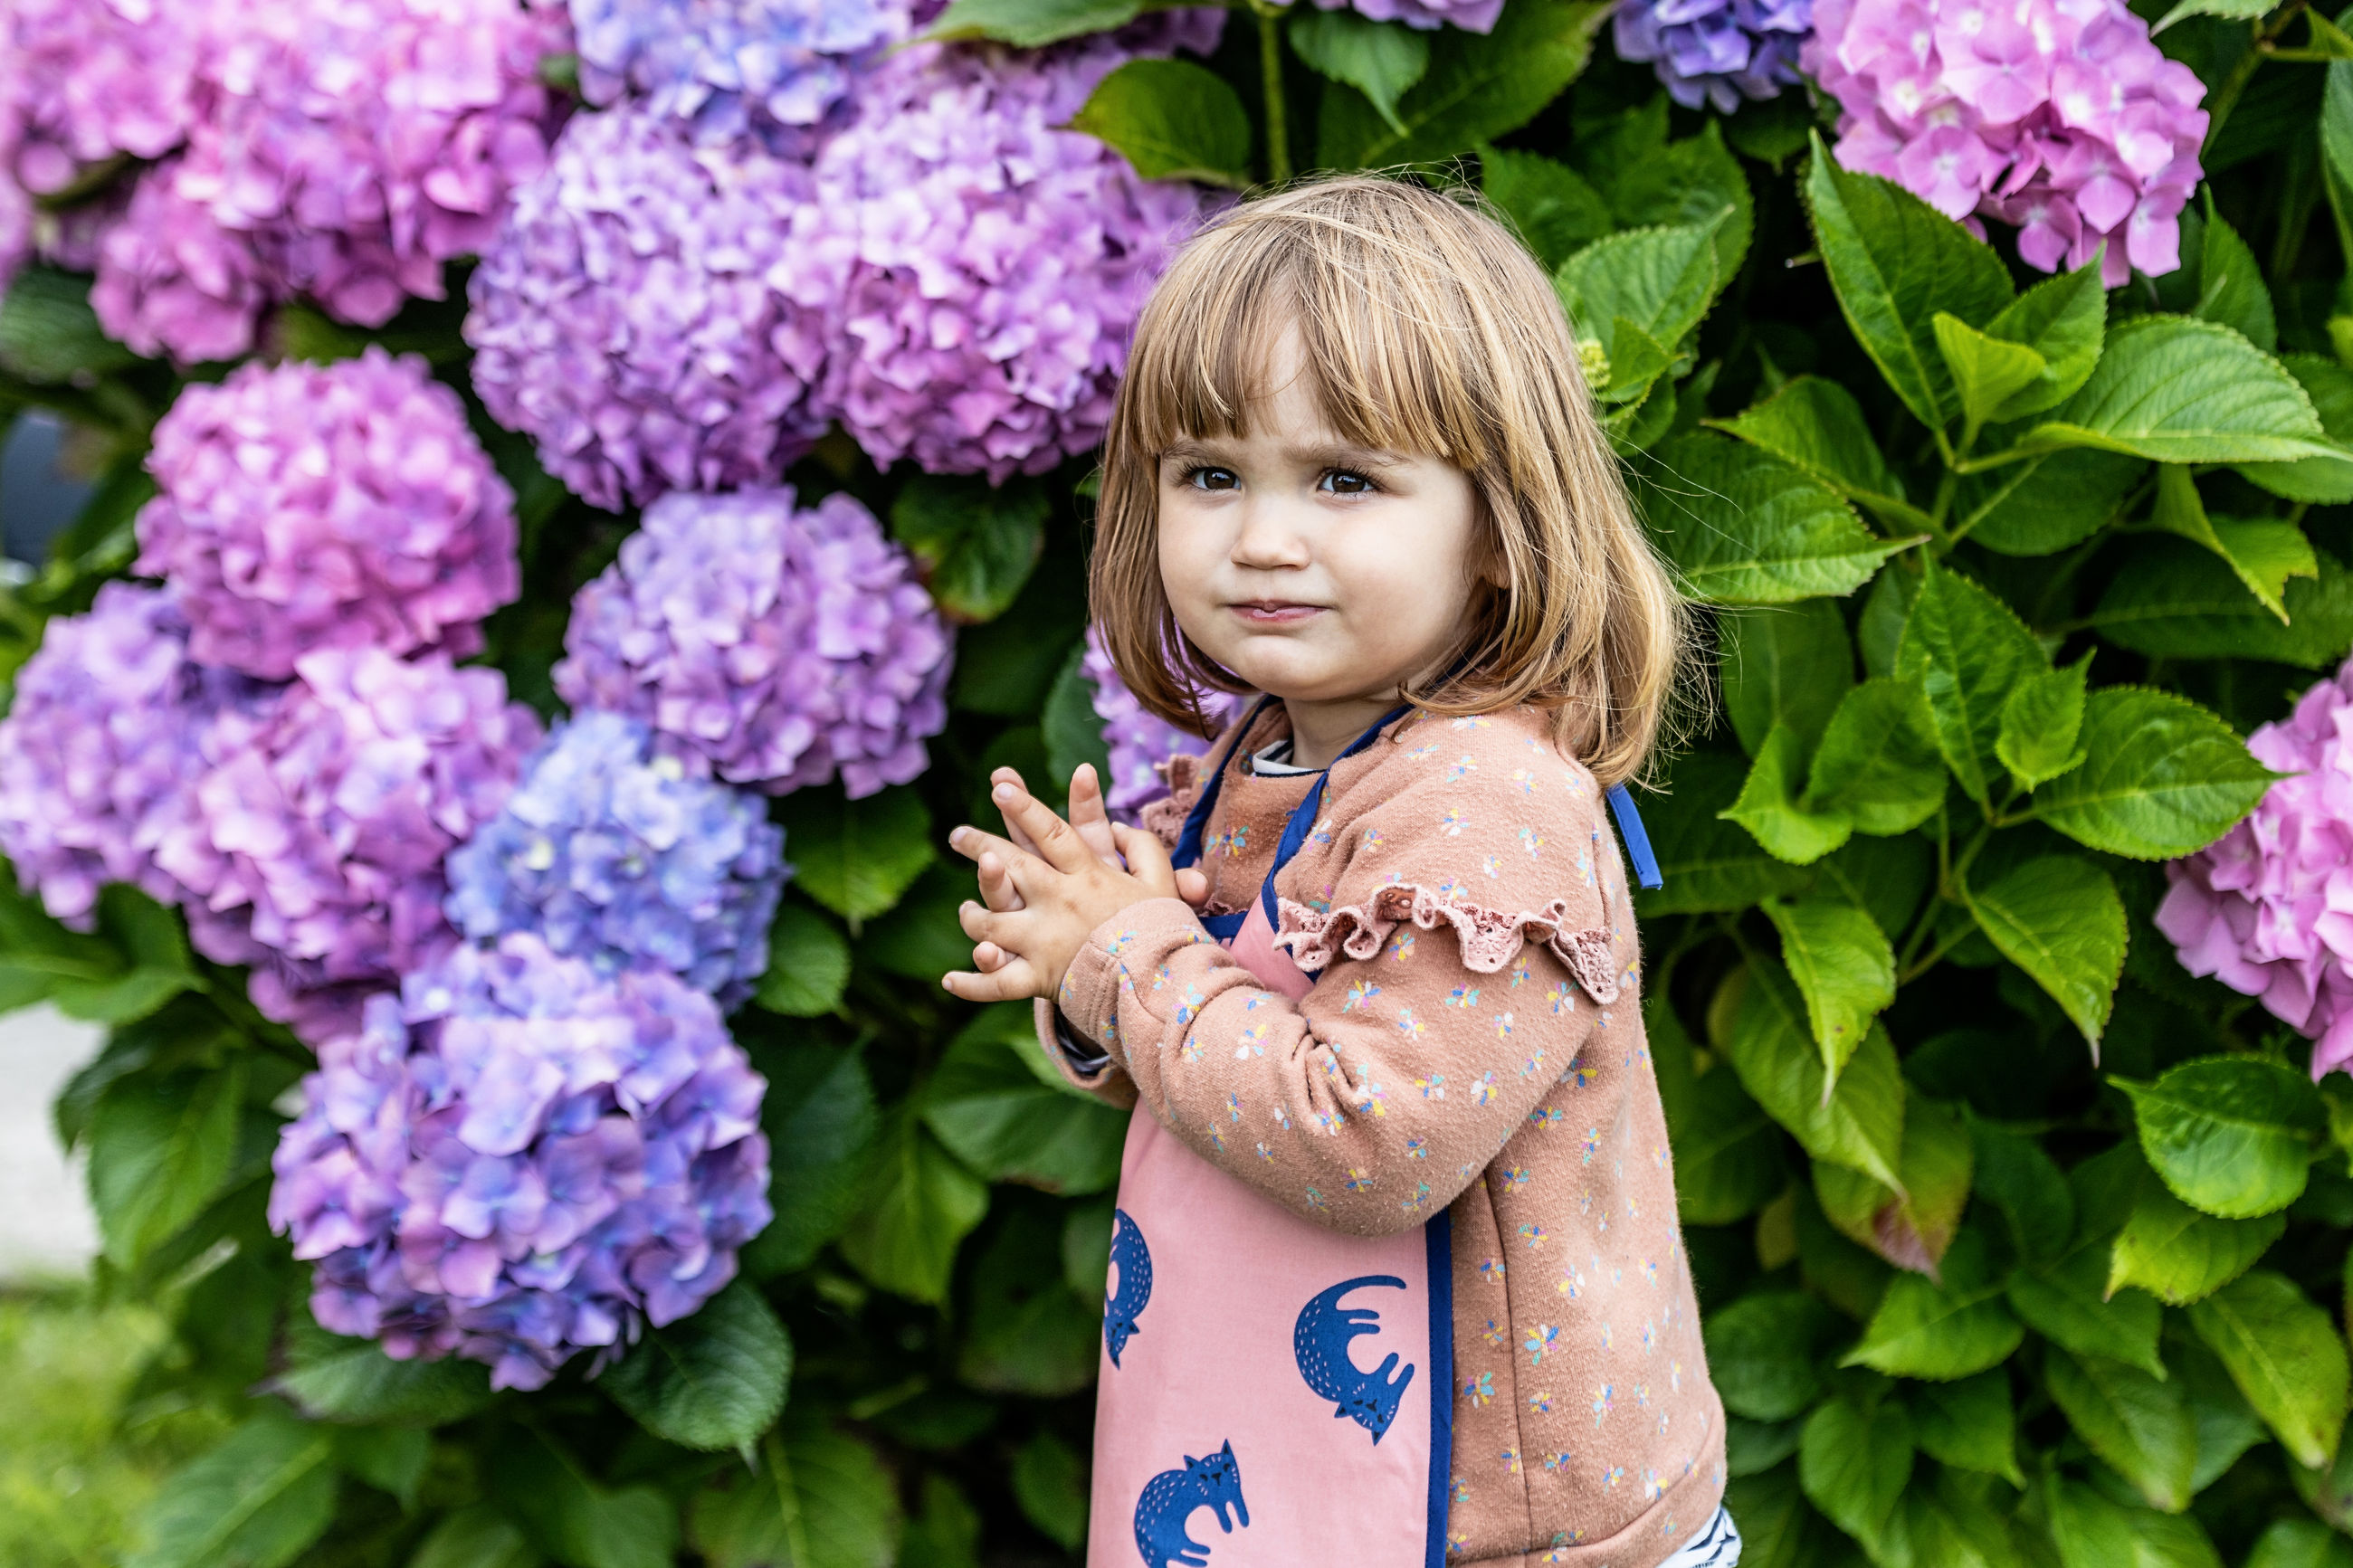 PORTRAIT OF A GIRL WITH PURPLE FLOWER